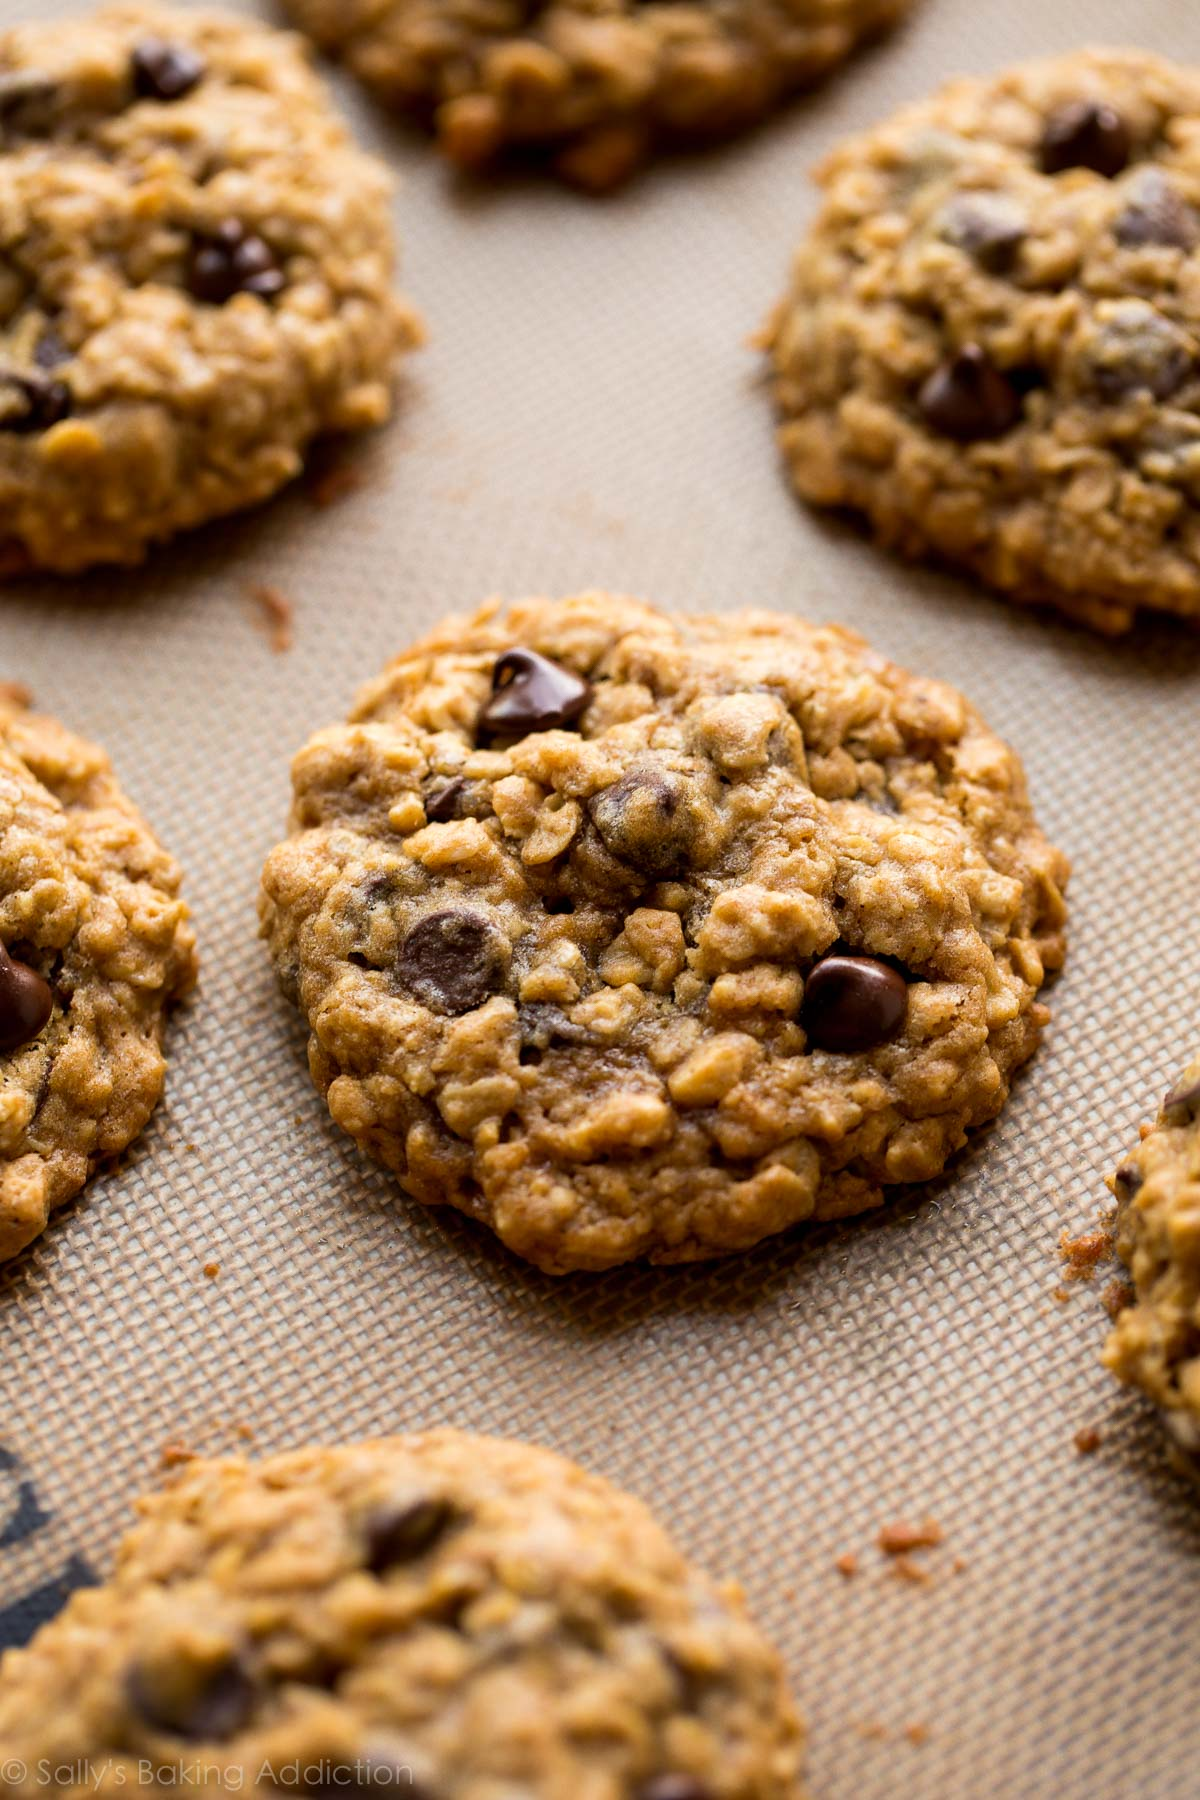 The best chocolate chip cookies! These soft & chewy oatmeal chocolate chip cookies have a few tricks to make them undeniably delicious, every time. Recipe on sallysbakingaddiction.com